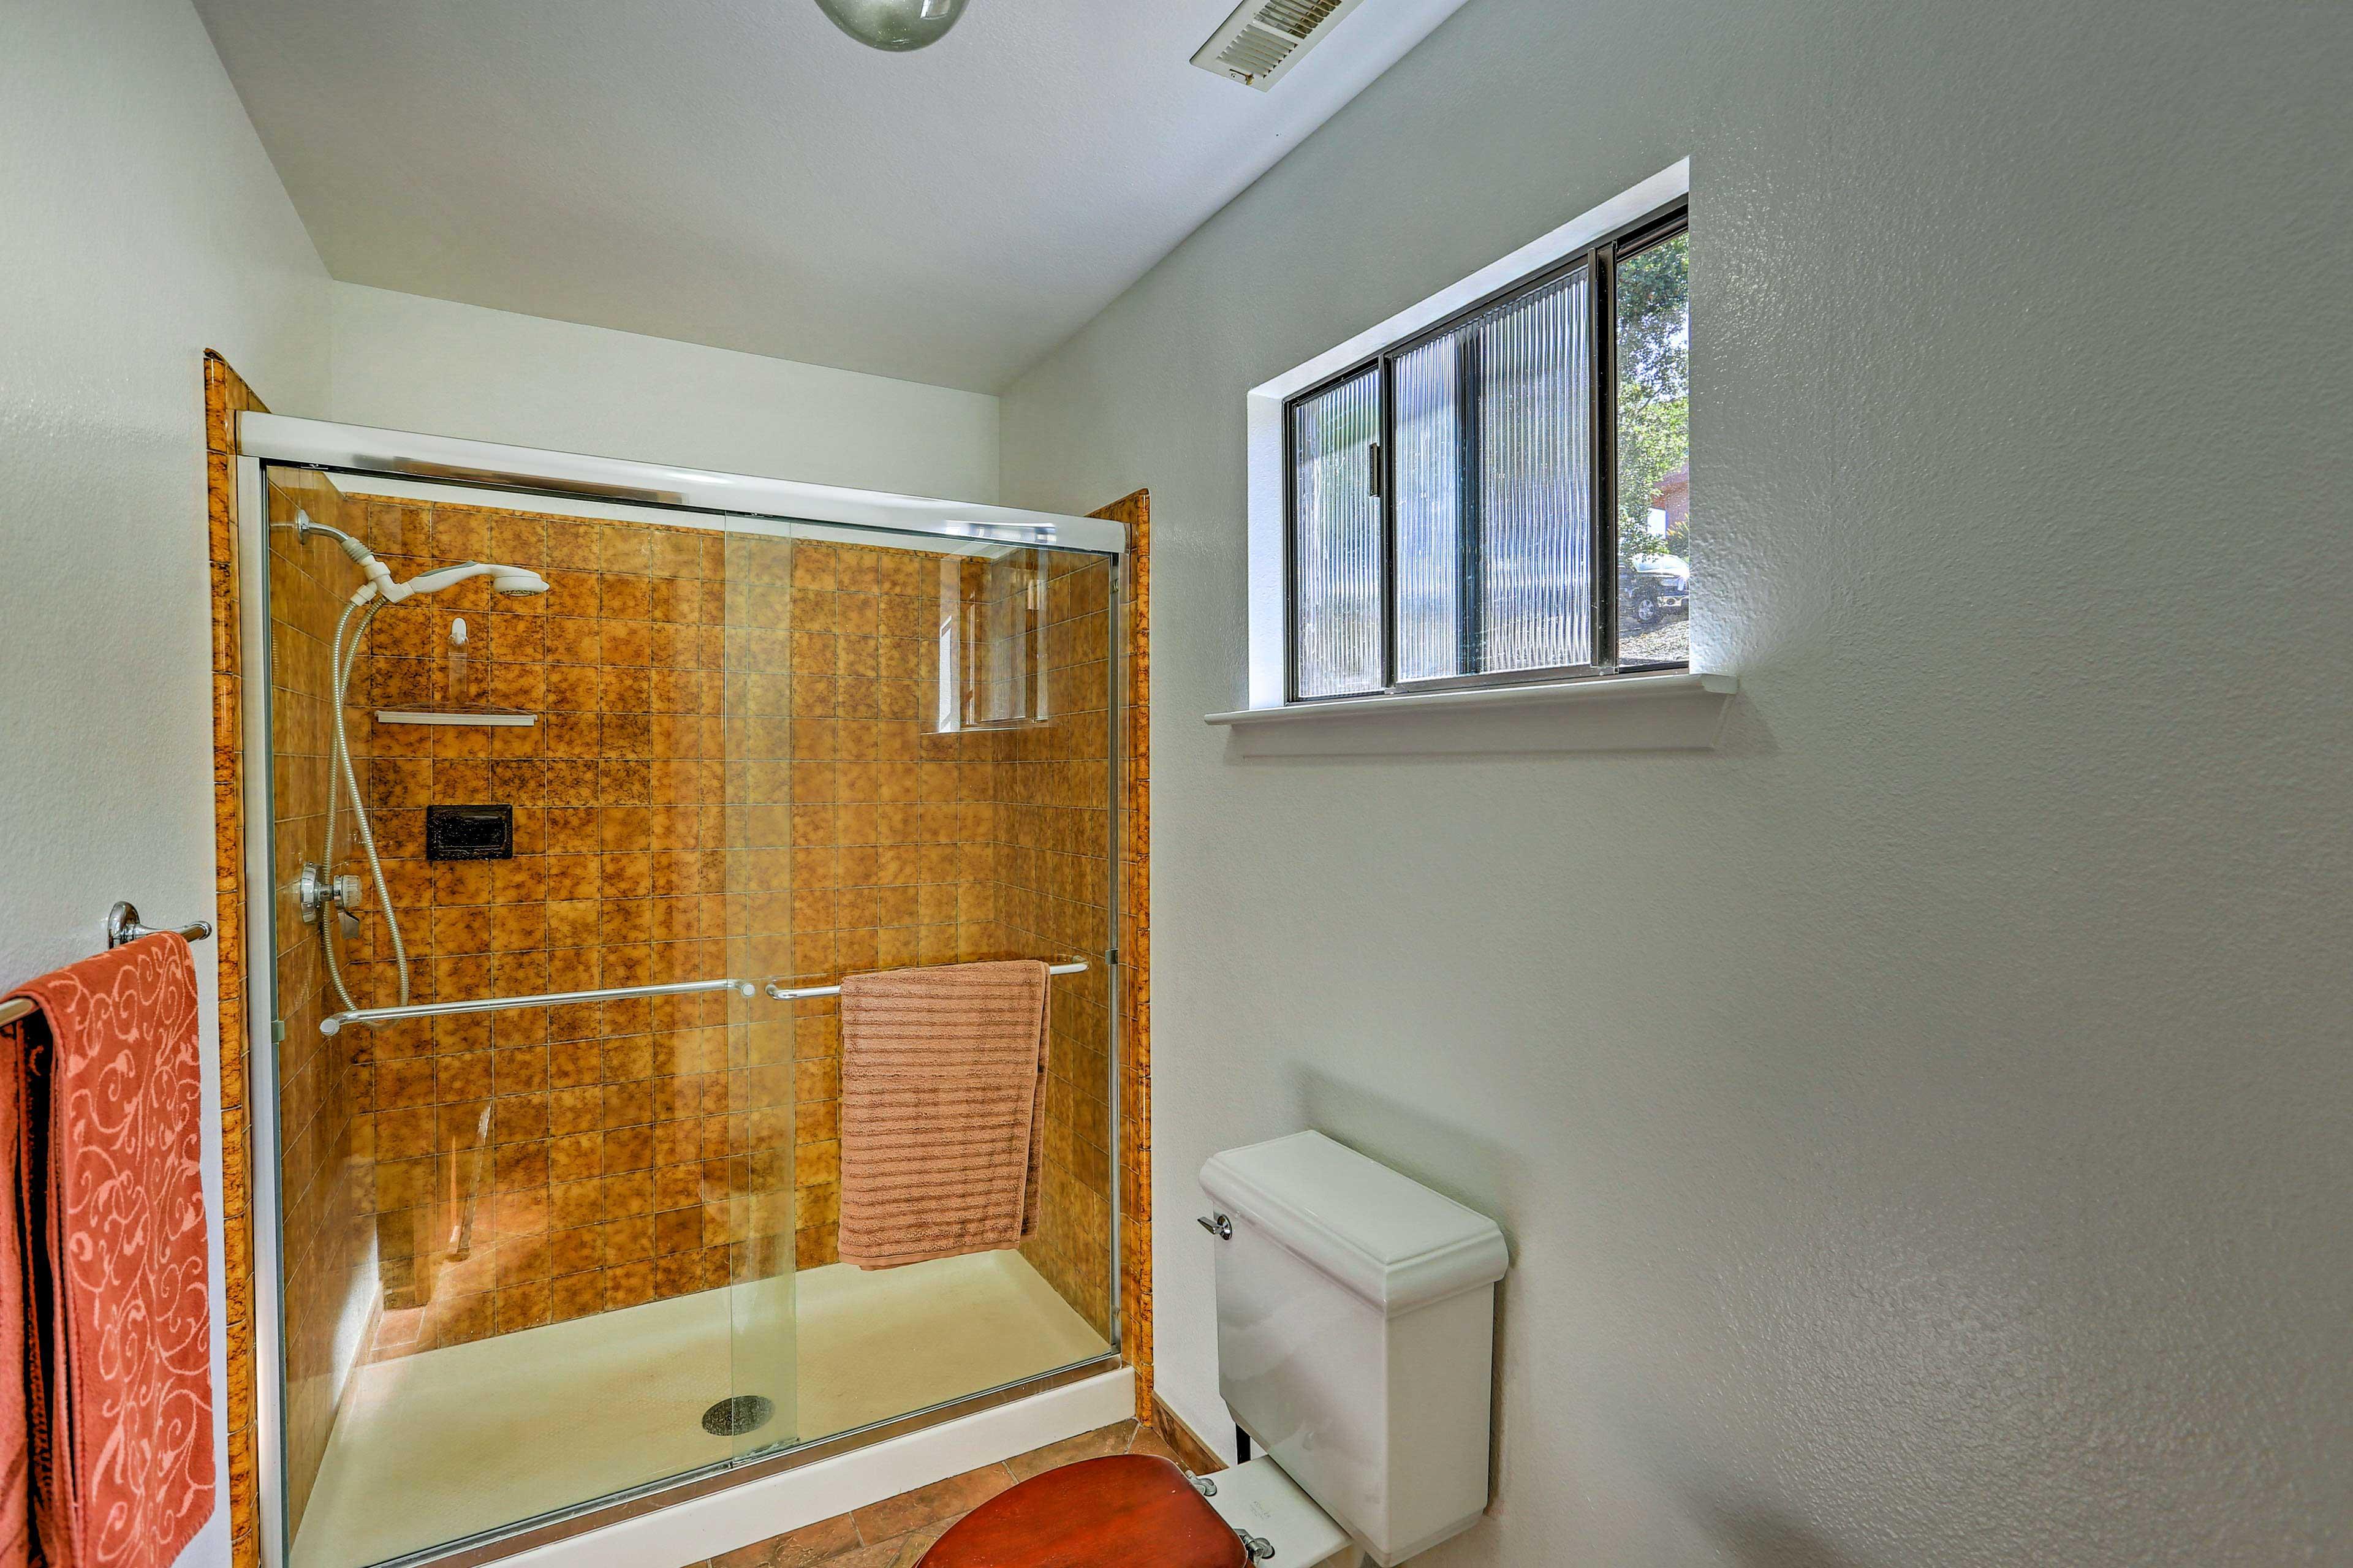 Rinse off the salt water in the walk-in shower.